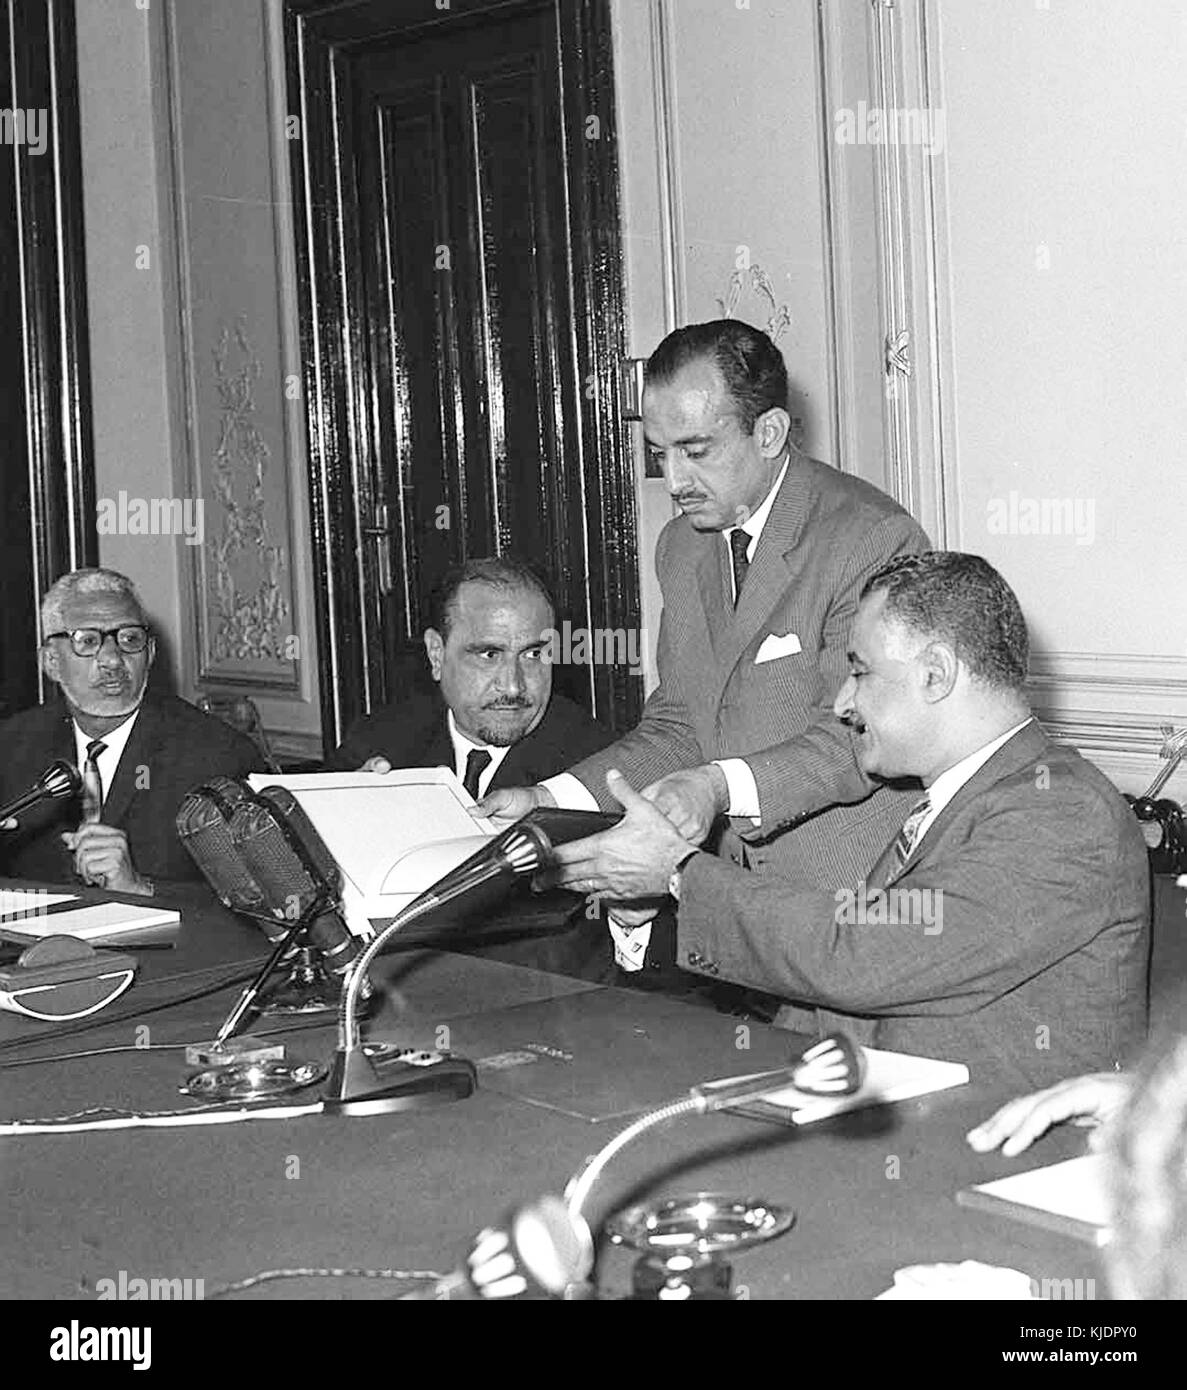 A meeting between Yemen represented by President Abdullah AL Sallal and Egypt headed by Abdel Nasser 14 July 1964 - Stock Image